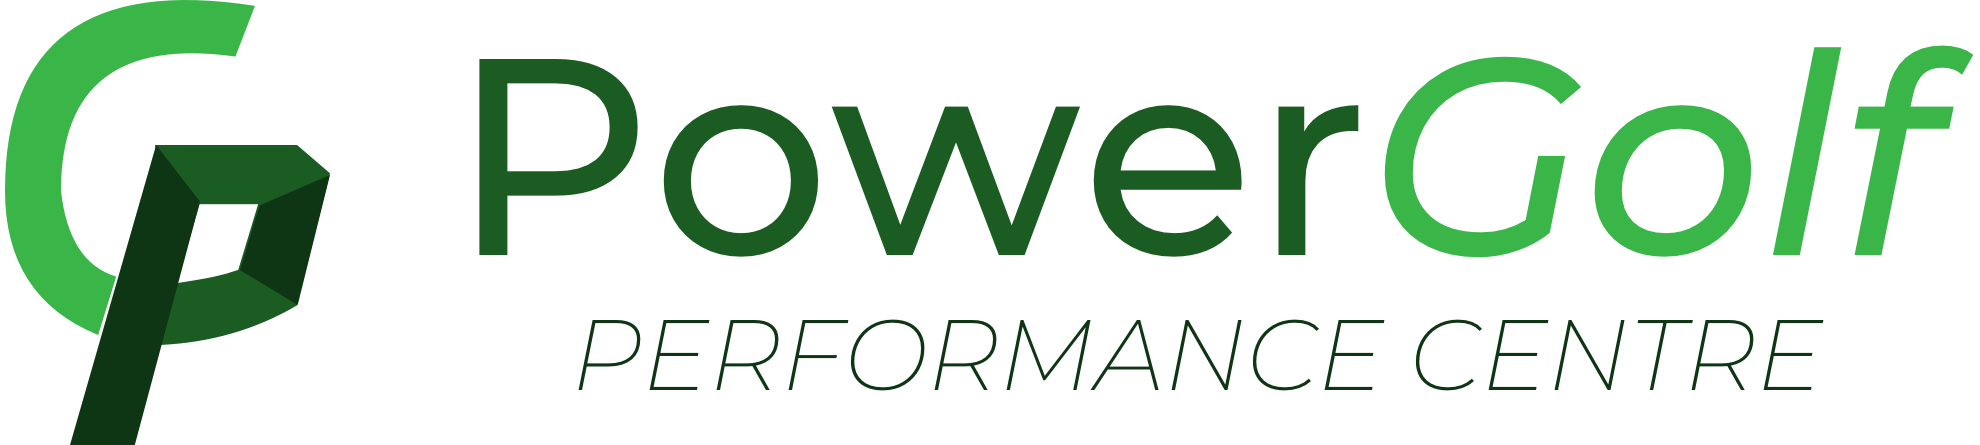 Power Golf Performance Centre Inc.